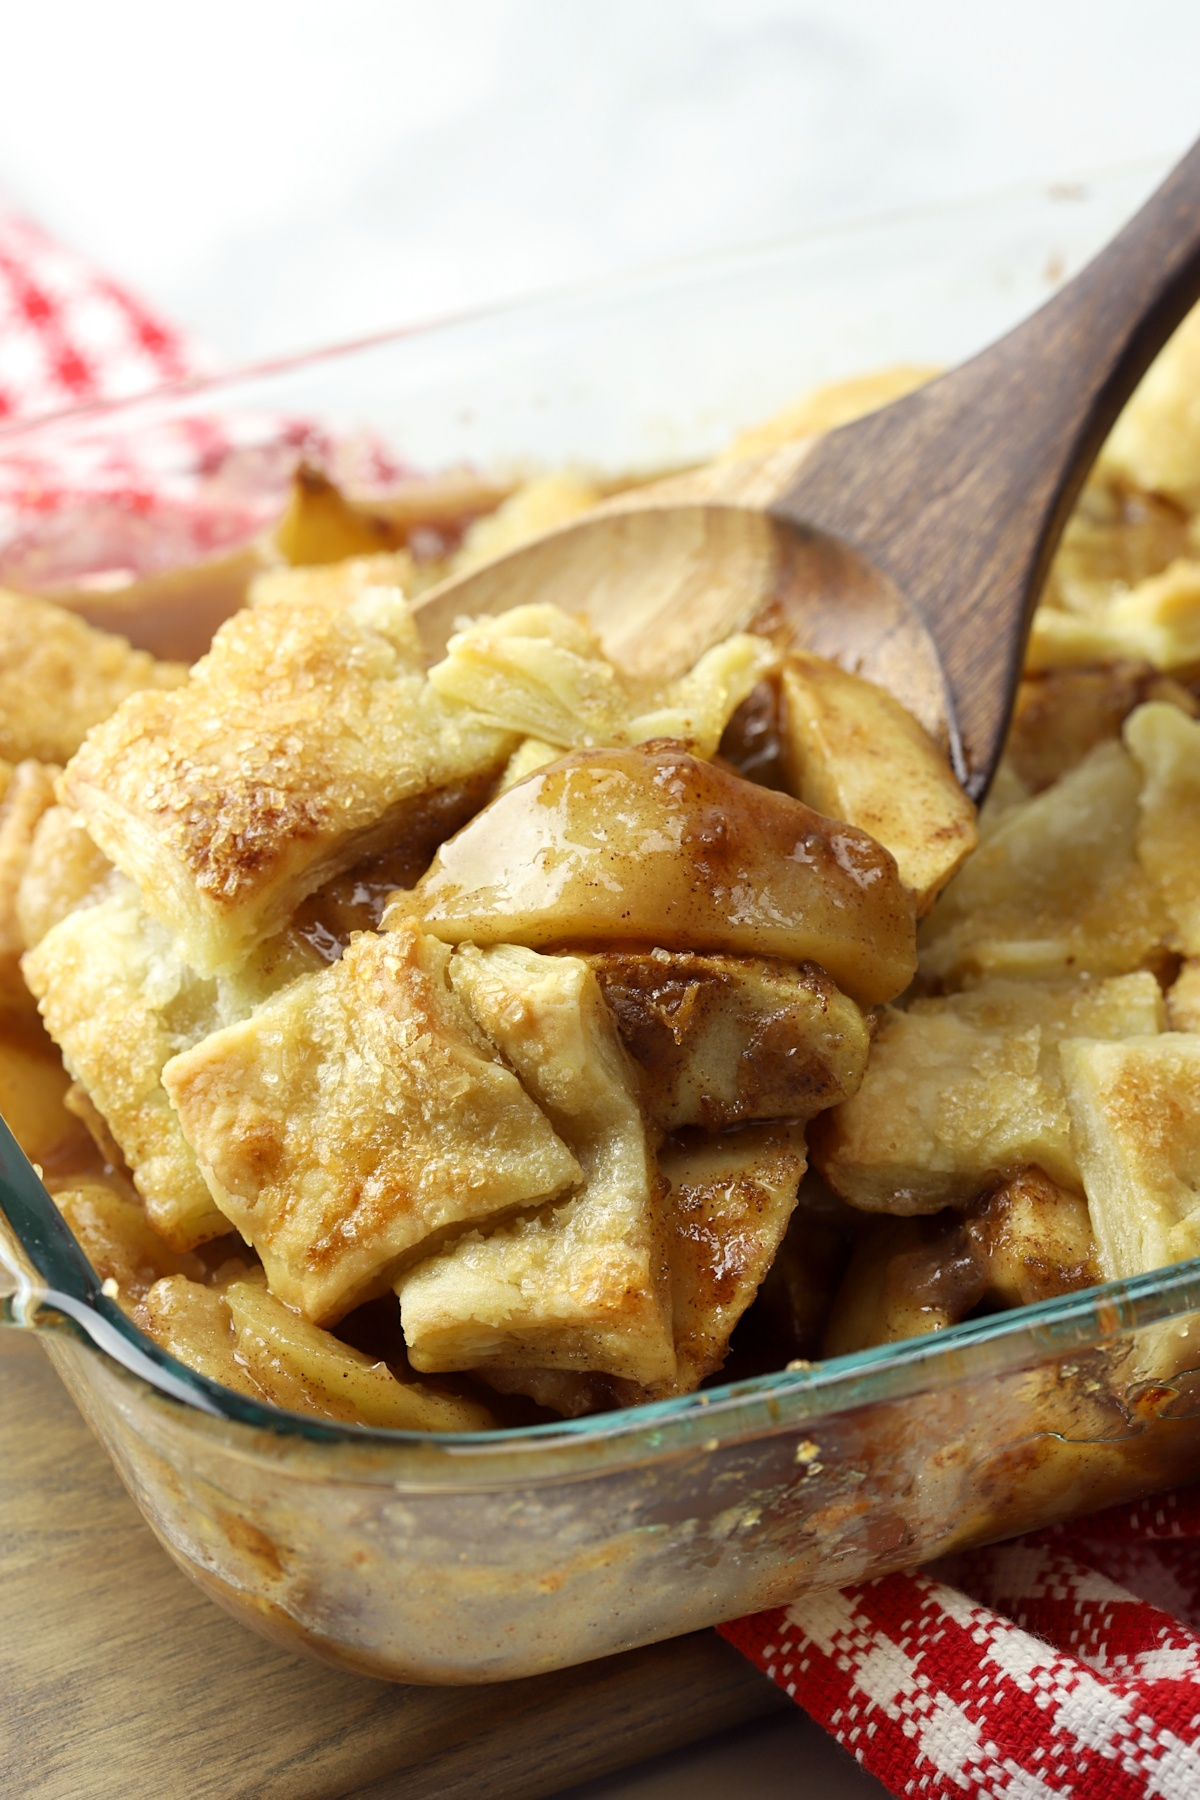 Wooden spoon scooping cooked apples and puff pastry out of a dish.